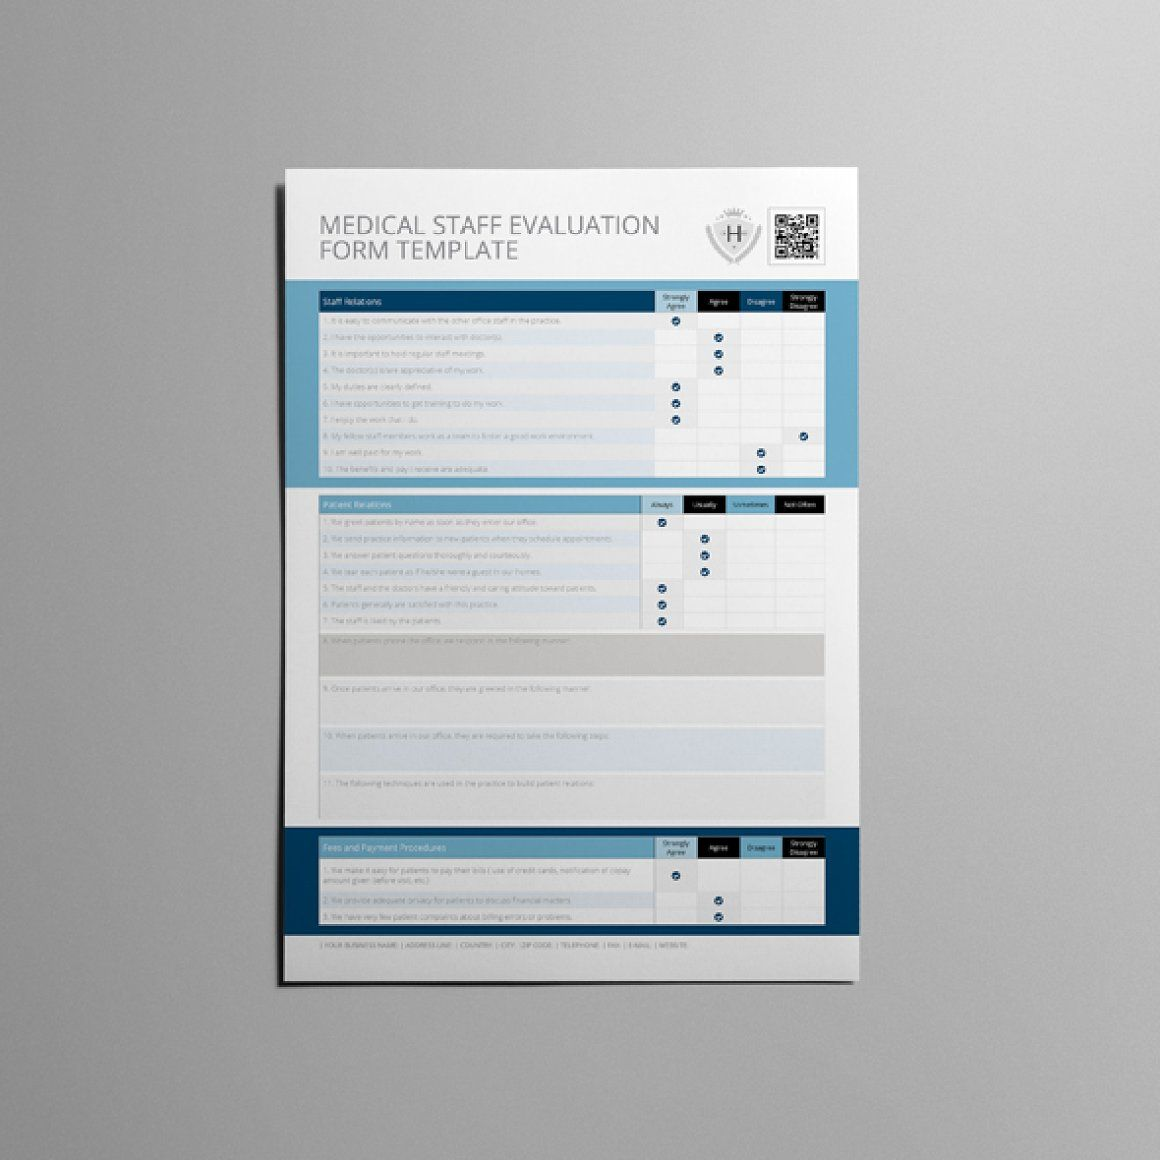 Training Evaluation Form A Template  Templates  Templates